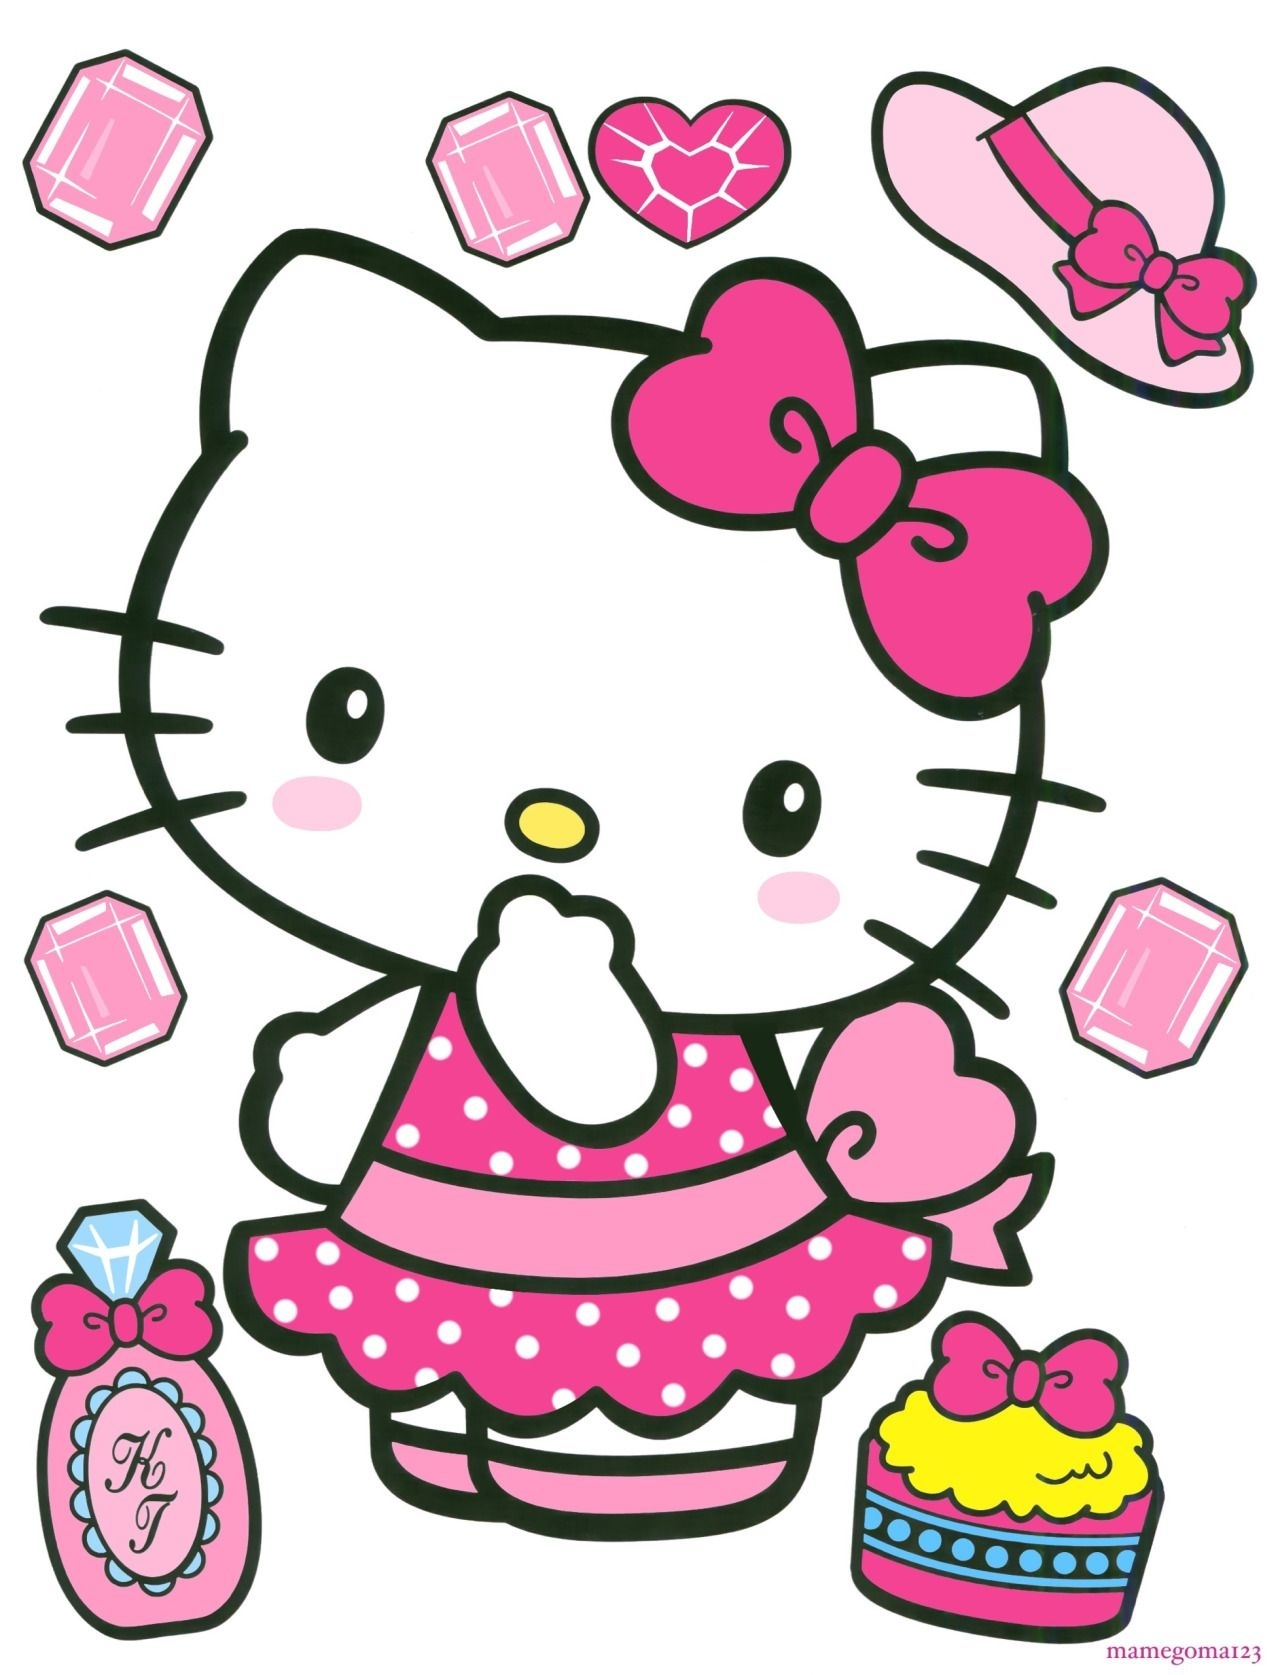 cute images : photo | hello kitty | pinterest | images photos, hello